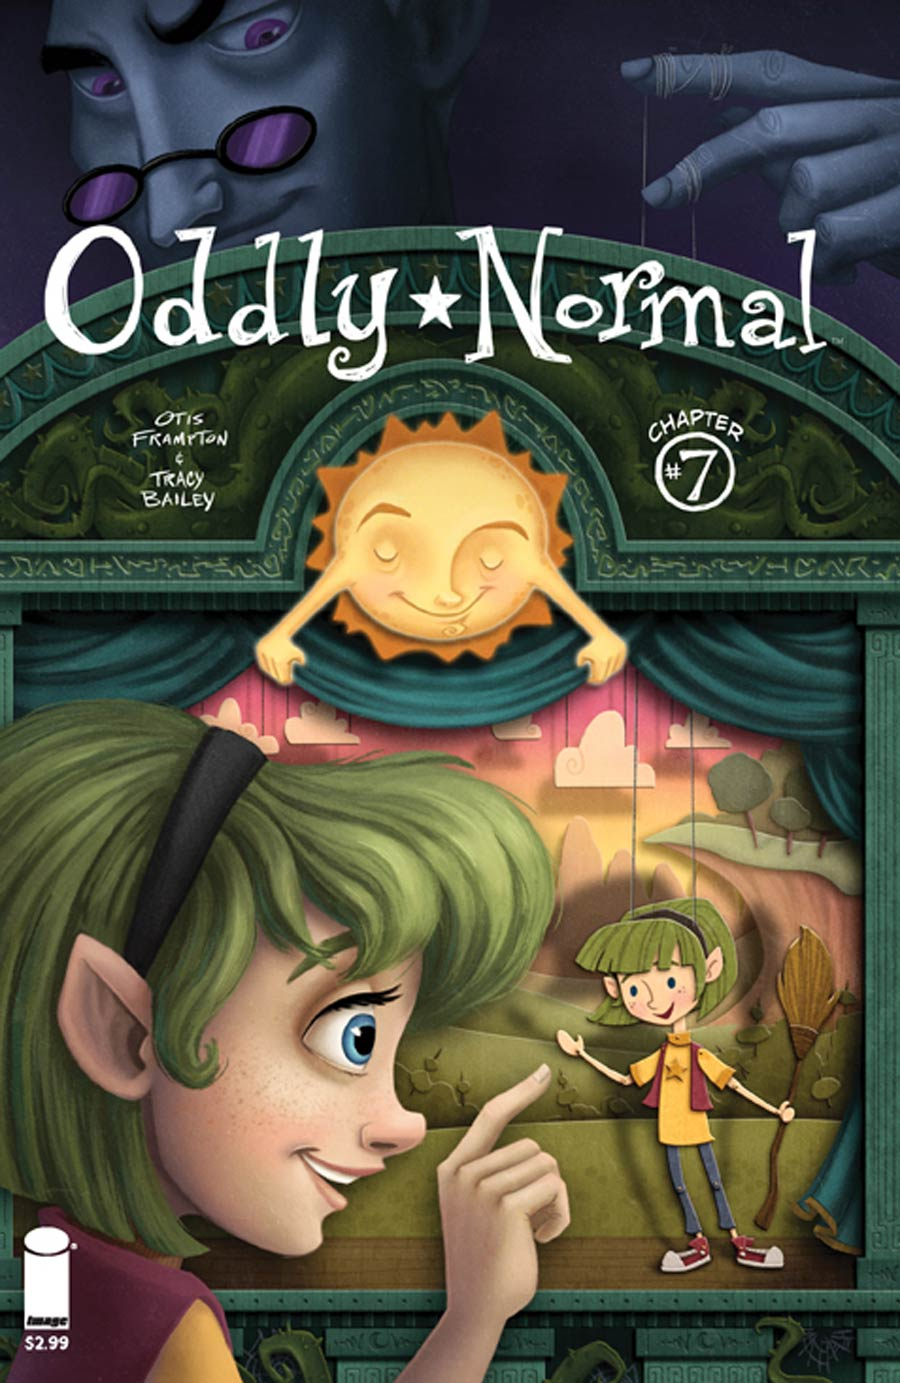 Oddly Normal Vol 2 #7 Cover B Maryn Roos